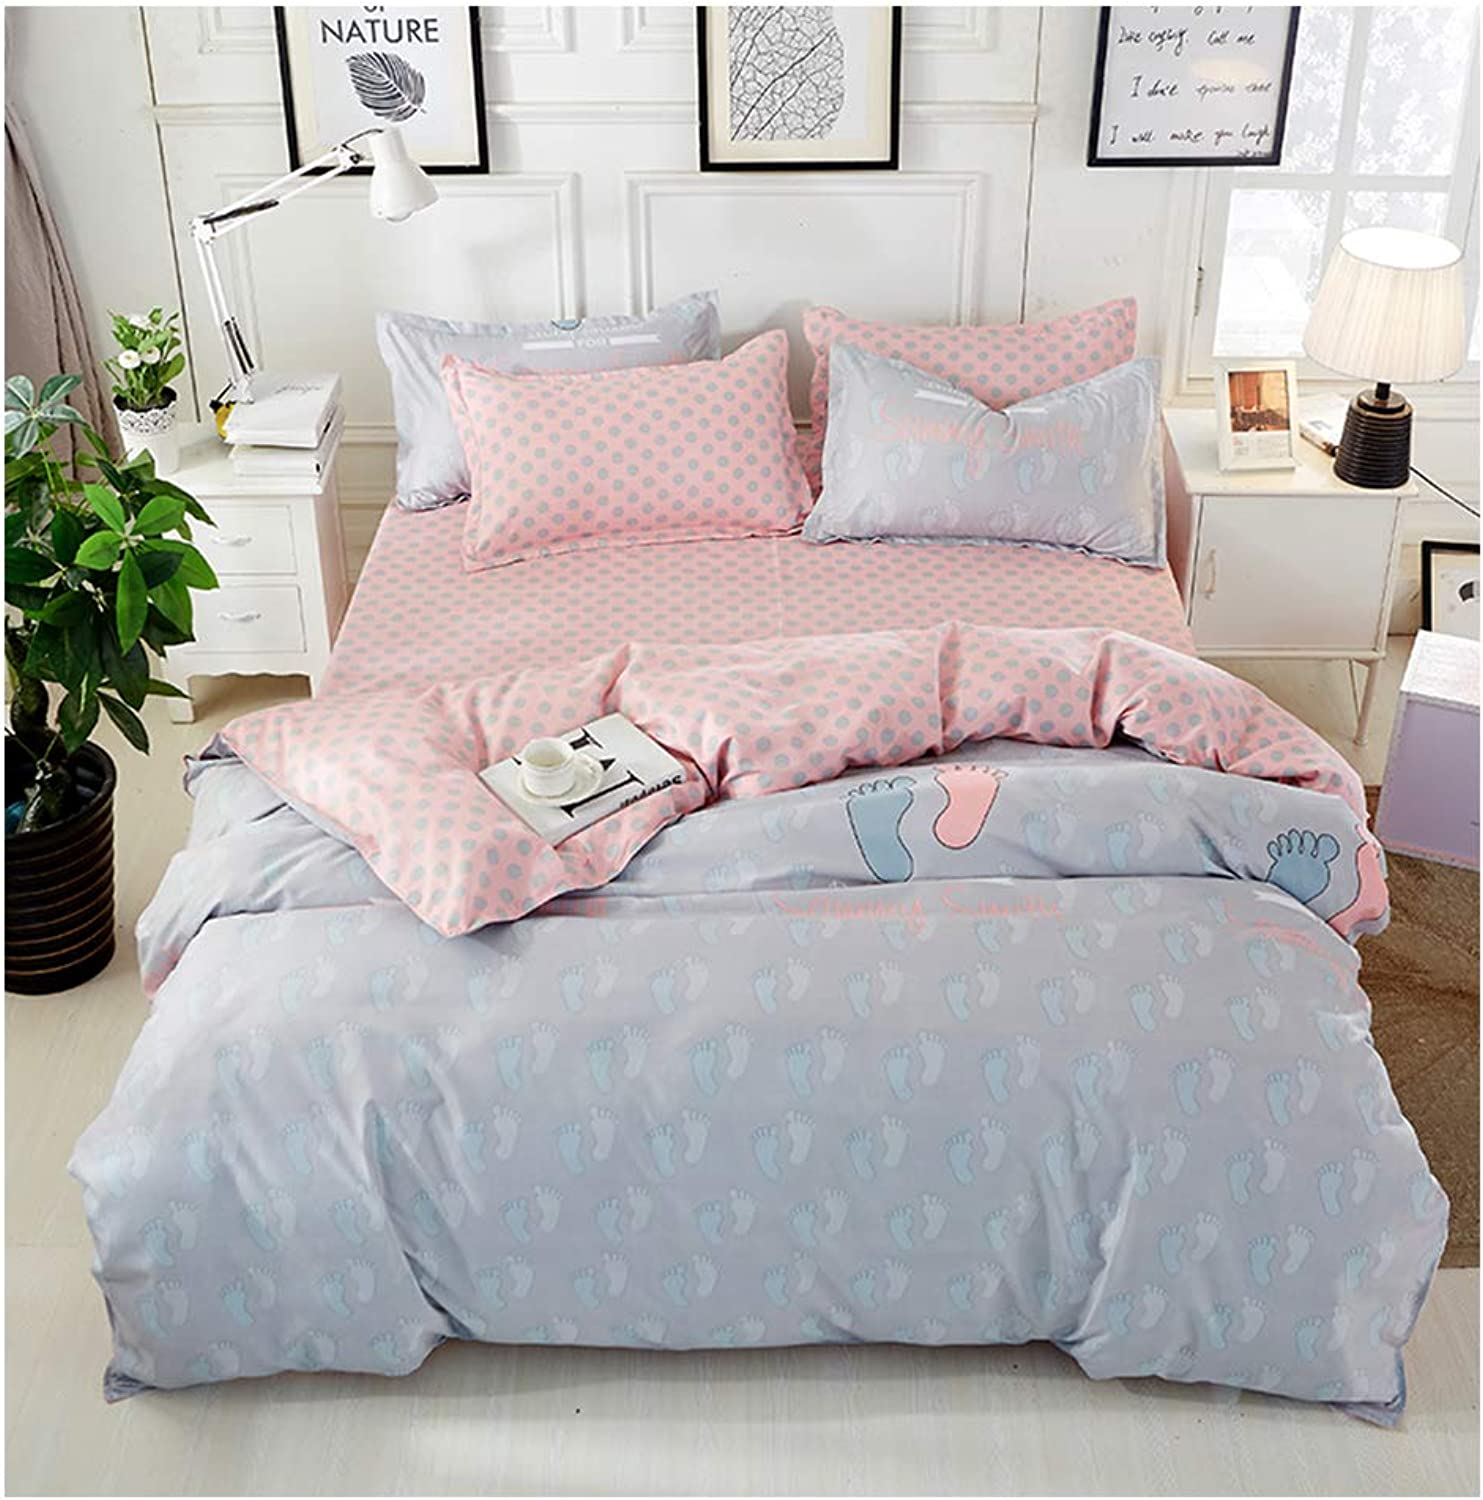 ORIHOME Beding Set - 3  4Piece Set Bedding INS Wind Foot Printing- Ultra Soft Microfiber Teen Bedding for Girl Bedroom(Without Quilt) HL (Footprint,Multi, Queen,79''x91'')